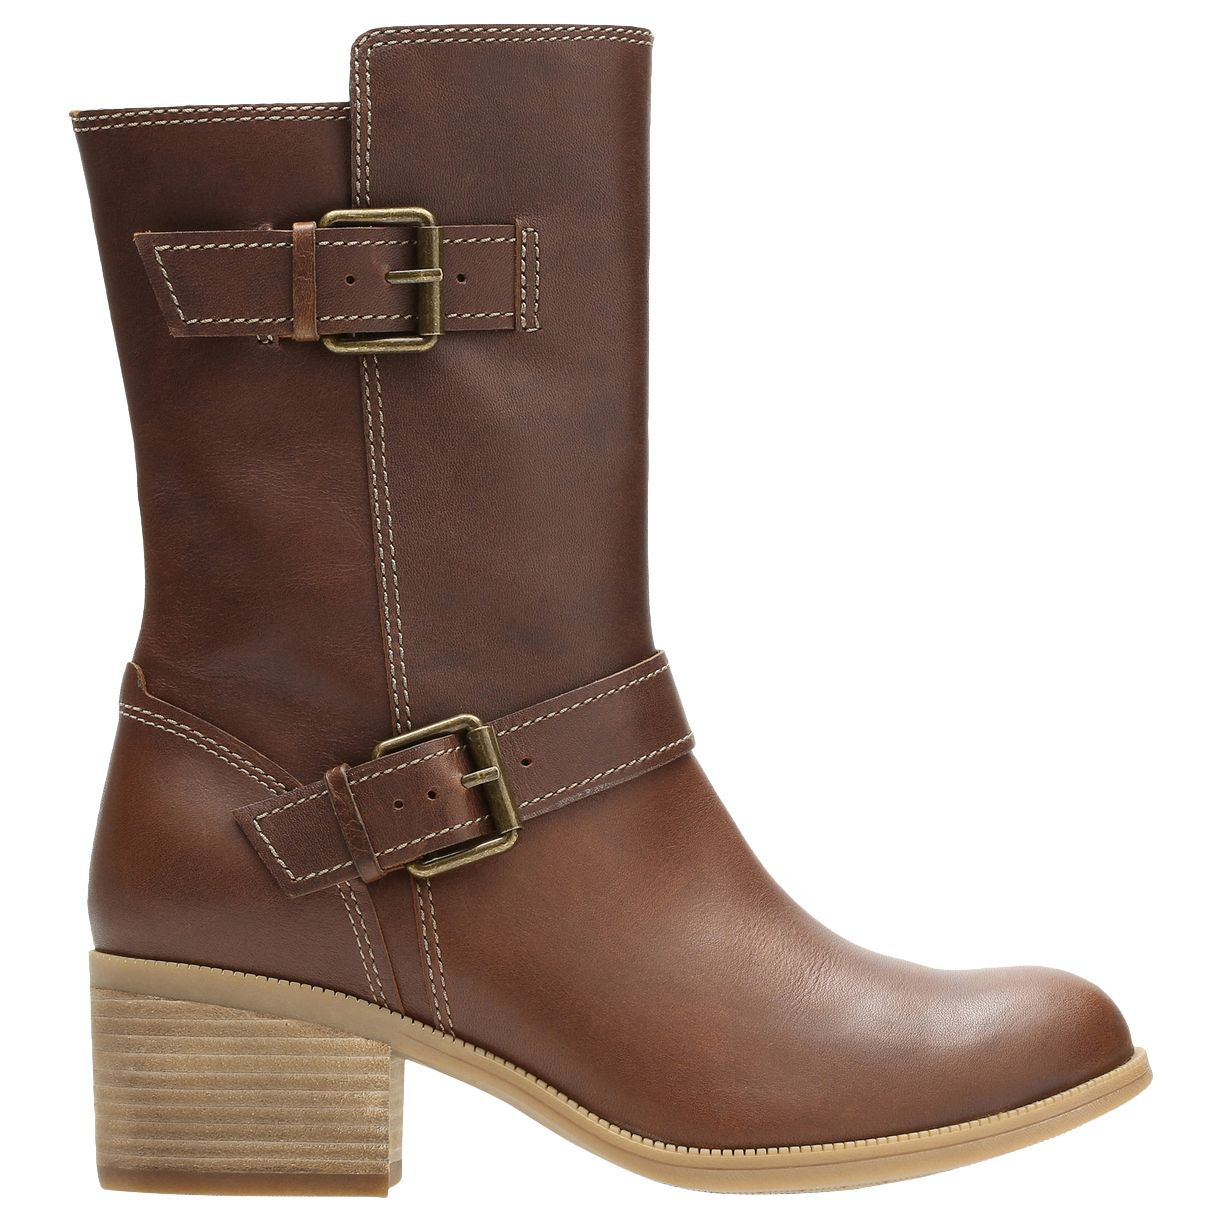 88f28128a74a Clarks Maypearl Oasis Block Heeled Biker Calf Boots, Dark Tan at John Lewis  & Partners